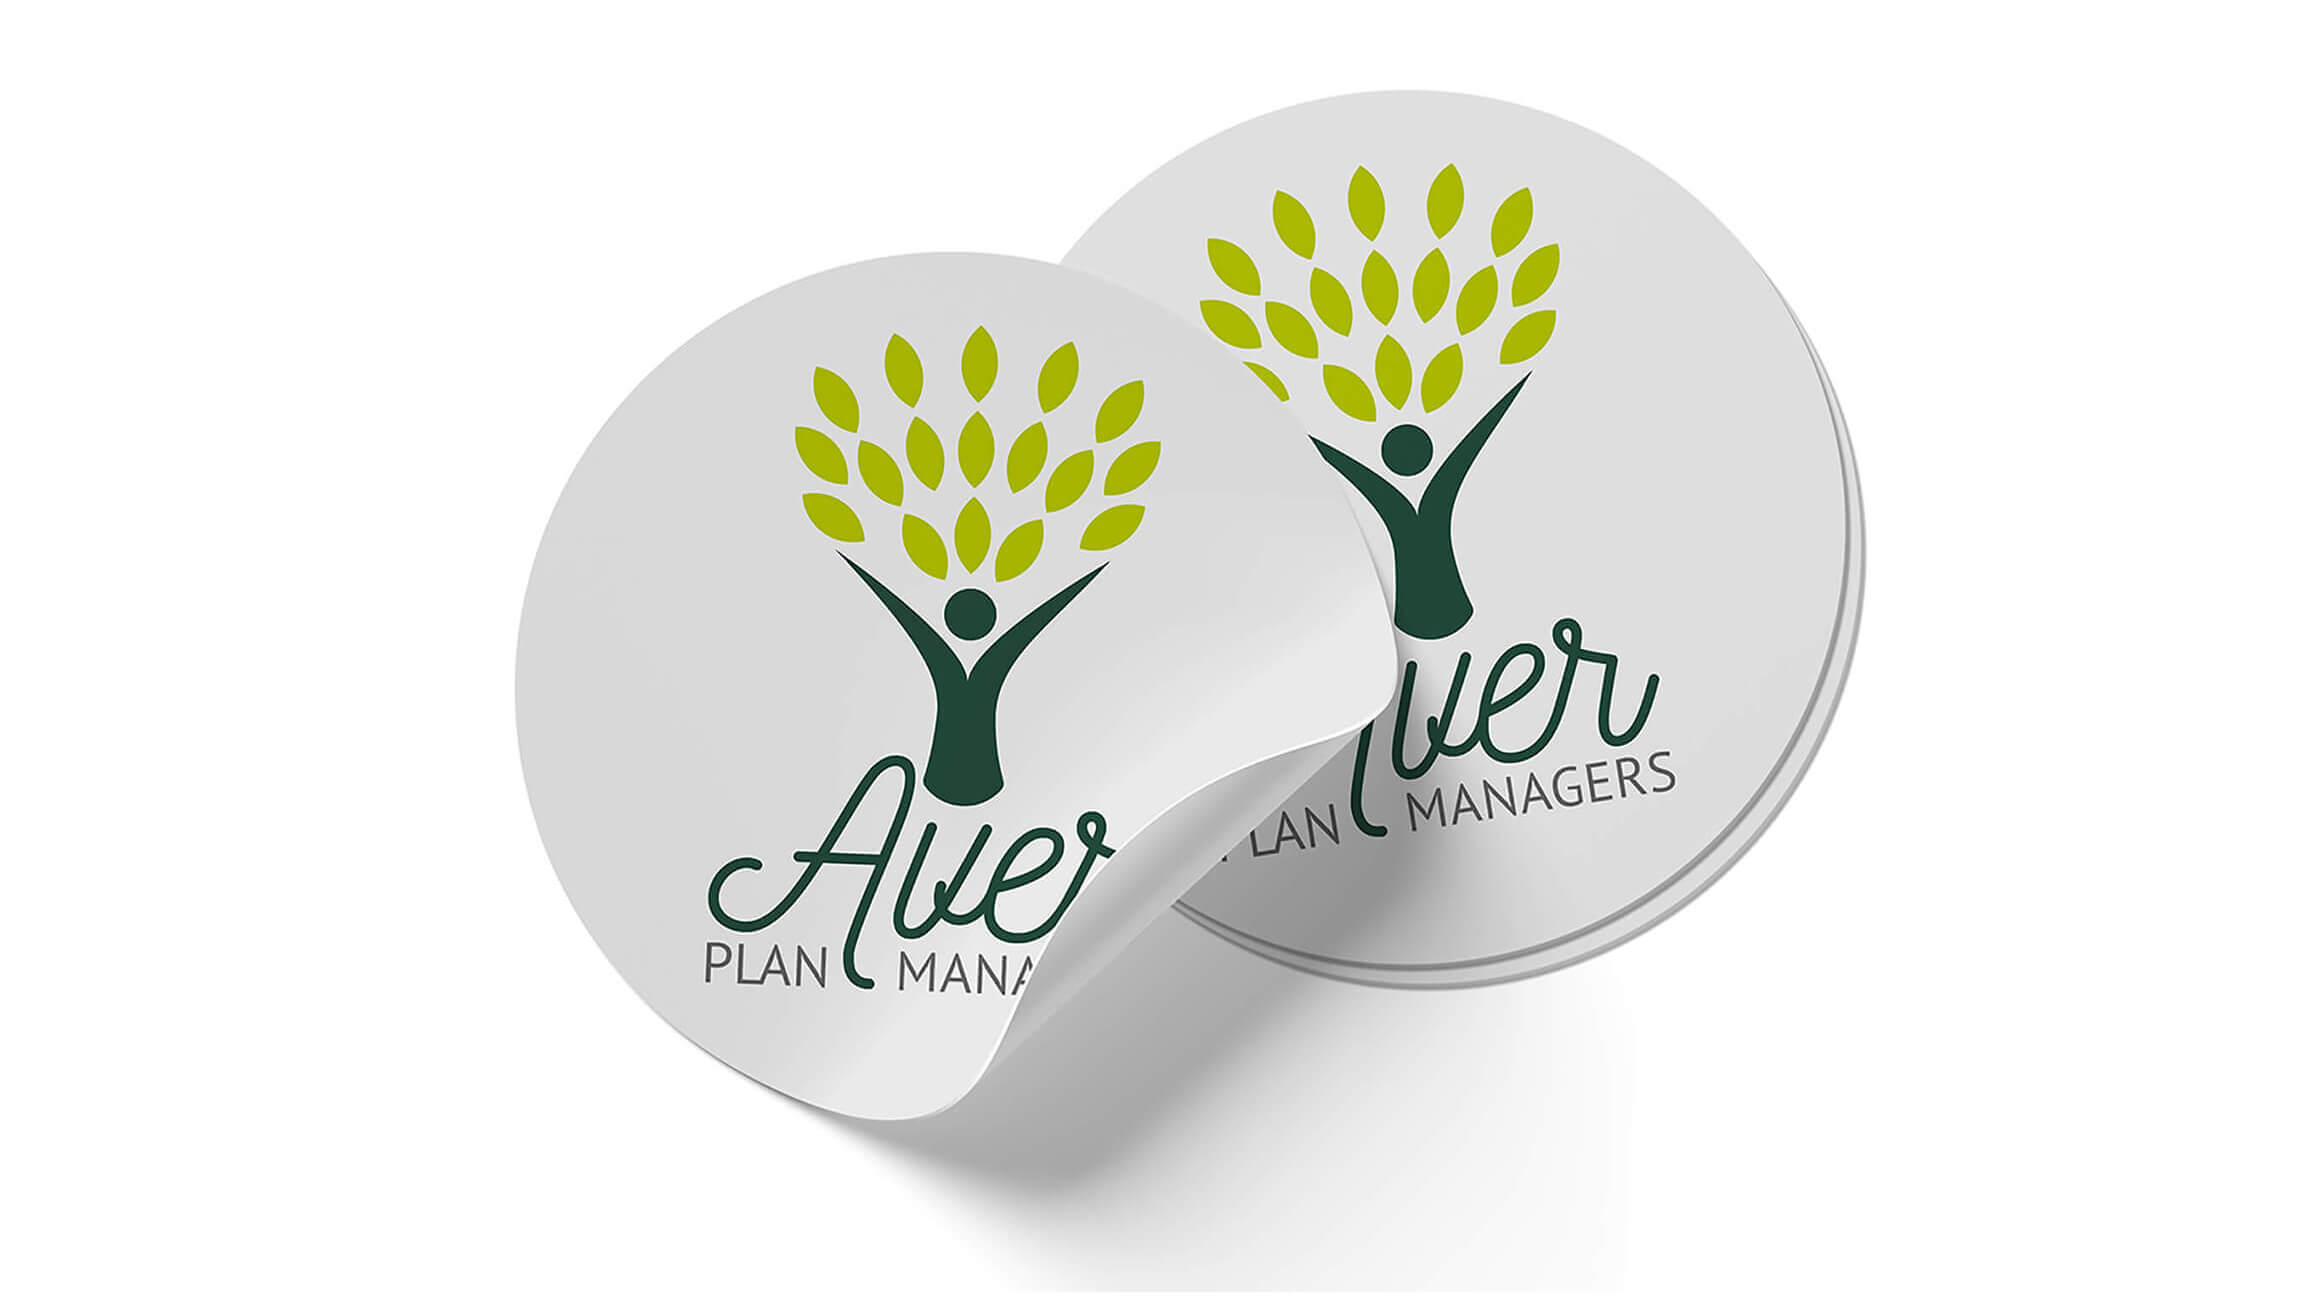 Logo & Branding - Logo design mockup on circular vinyl stickers for Aver Plan Managers